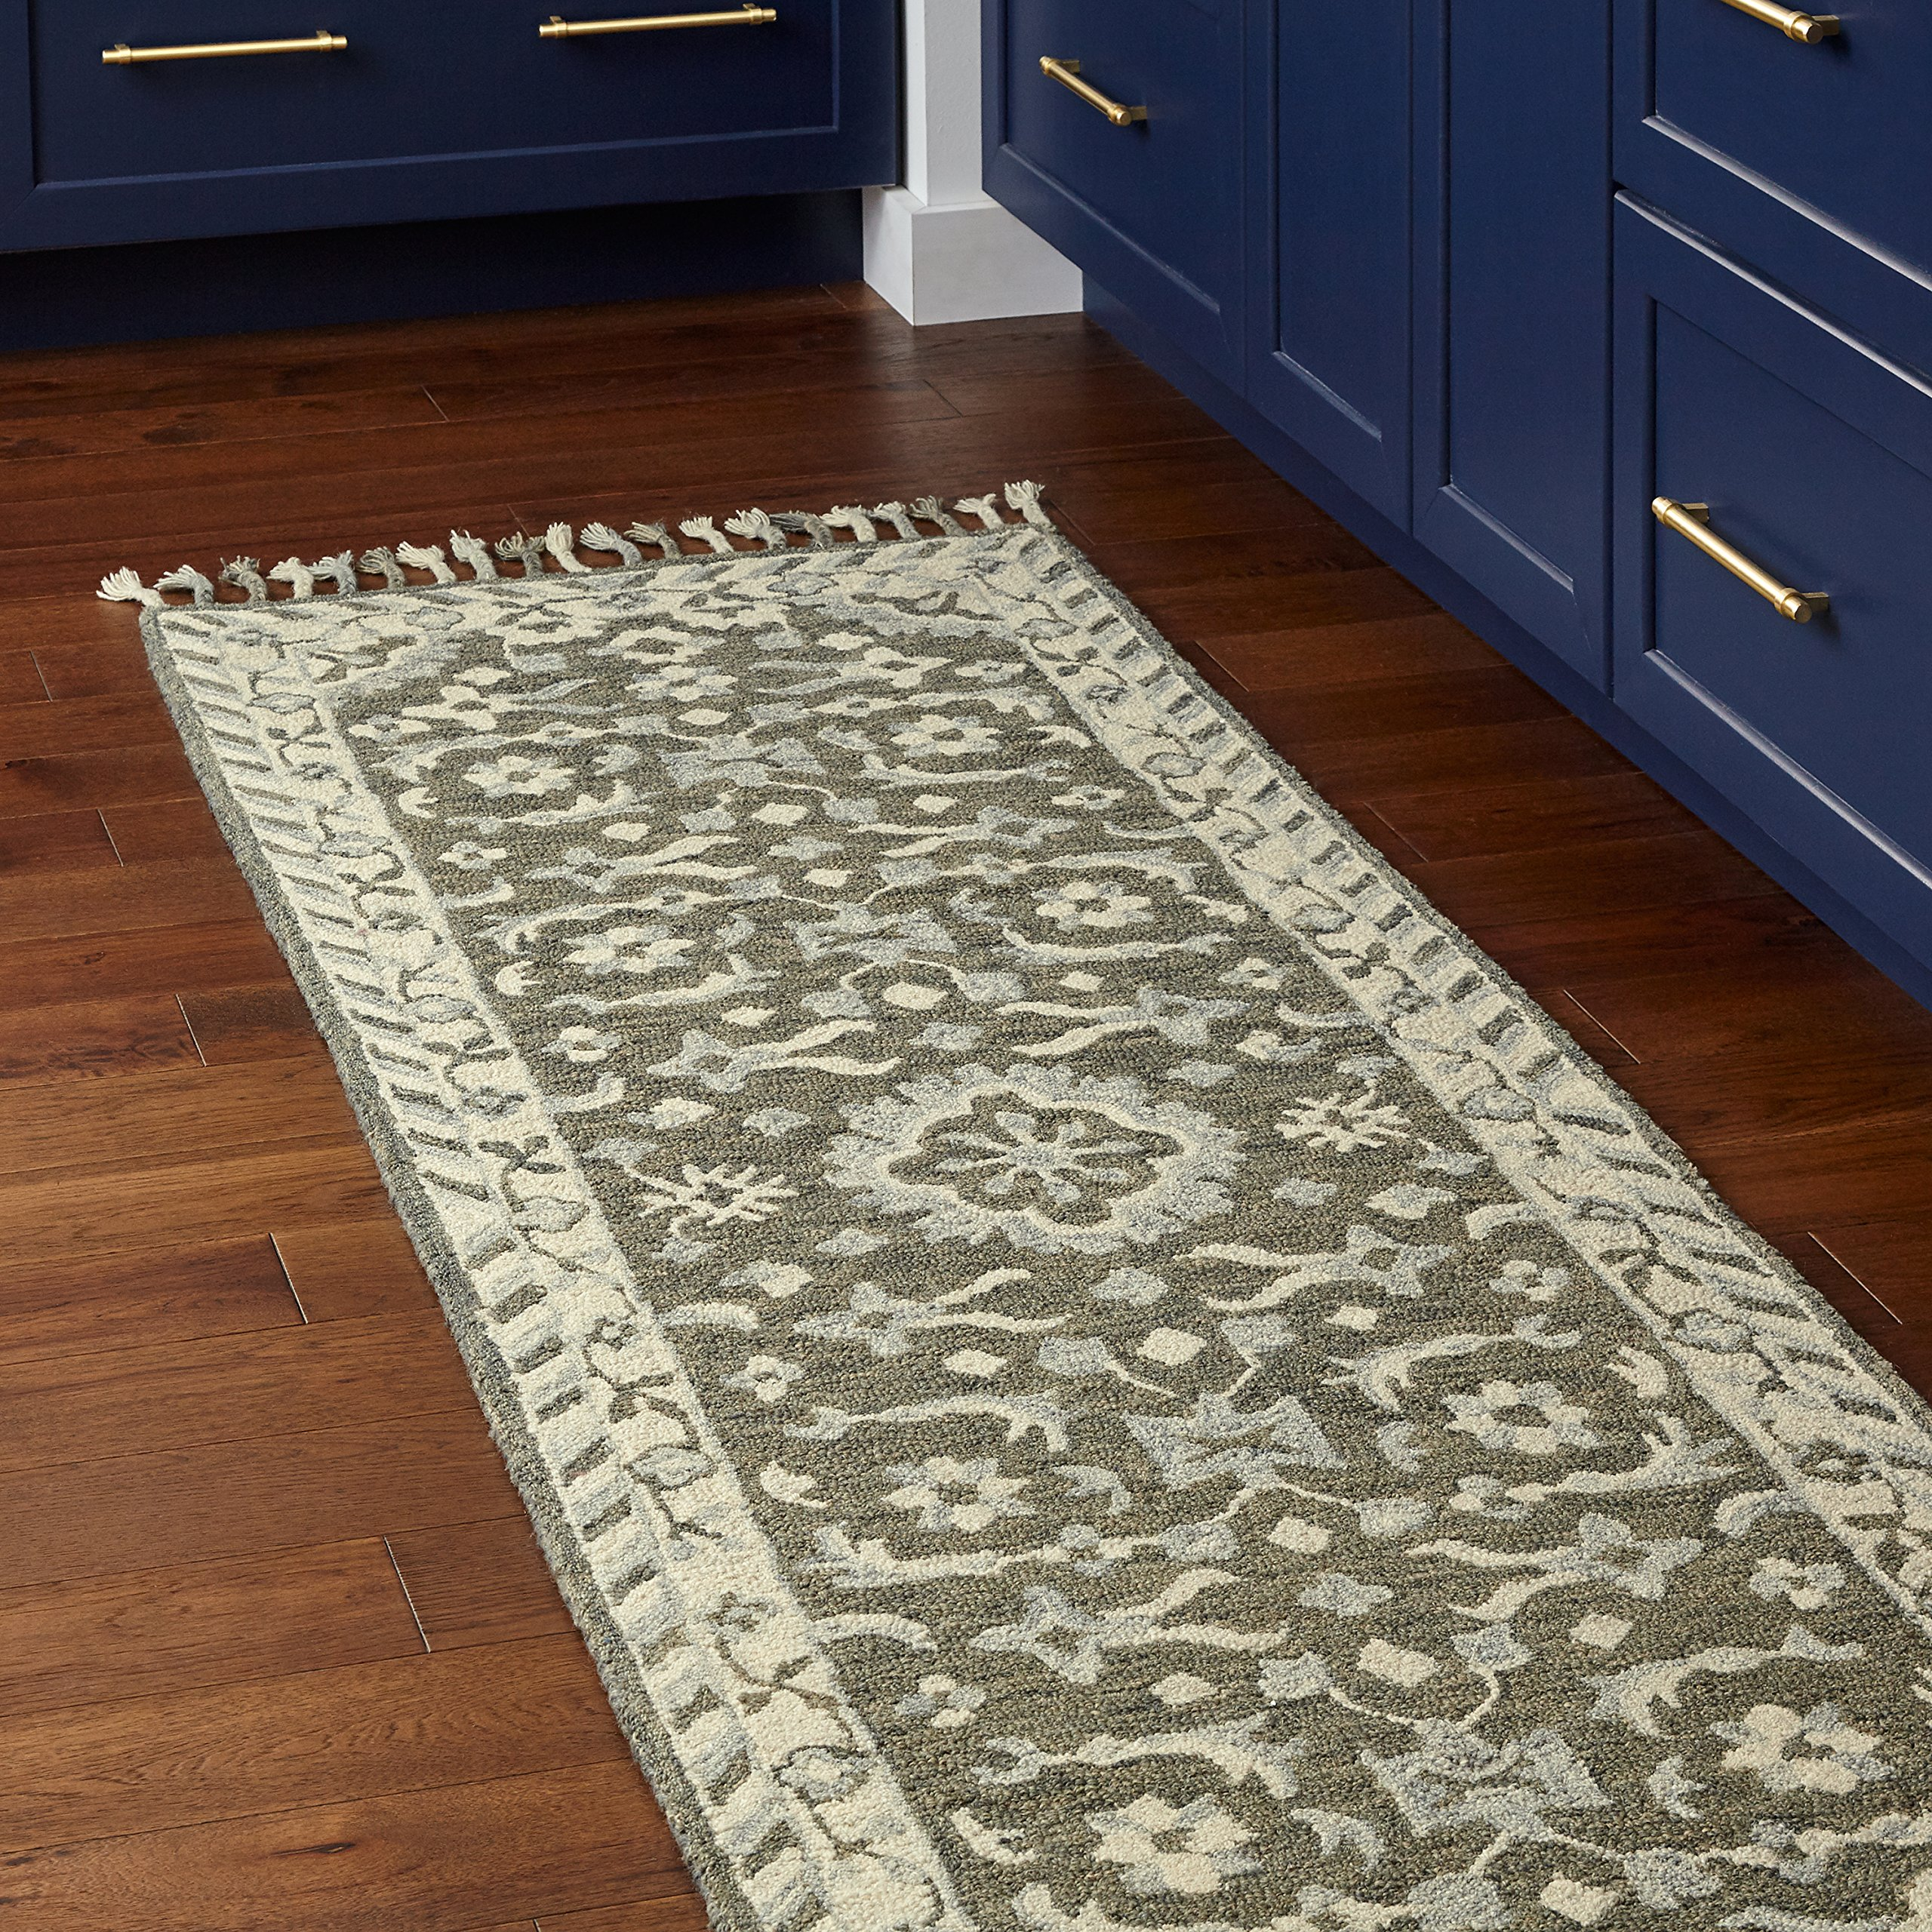 Stone & Beam Barnstead Floral Wool Runner Rug, 2' 6'' x 8', Charcoal and Beige by Stone & Beam